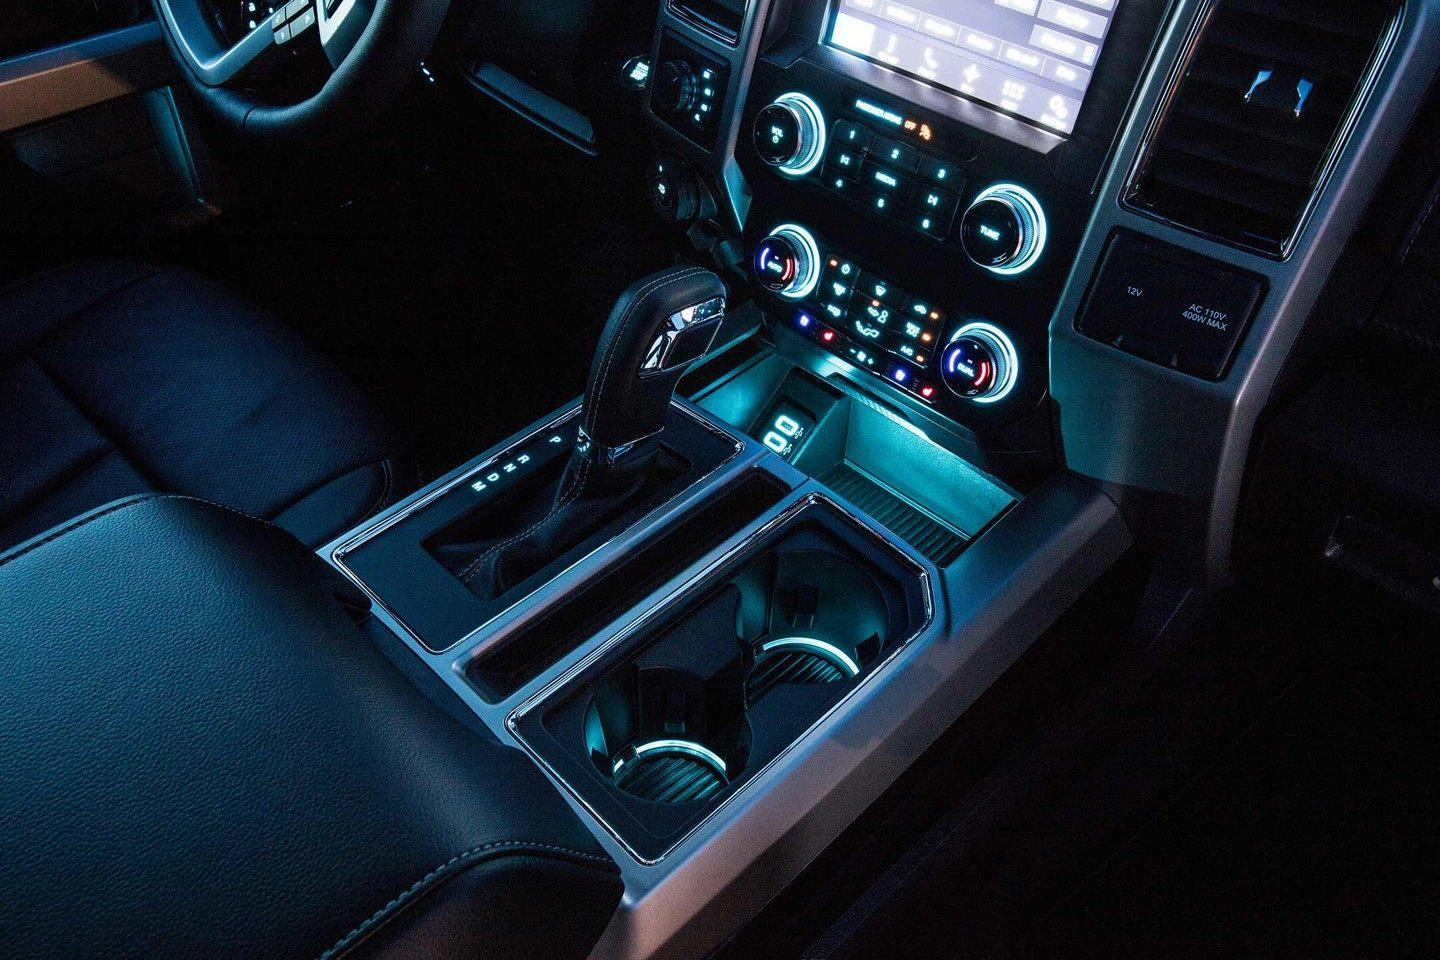 Ford F-150 illumunated interior center console at night